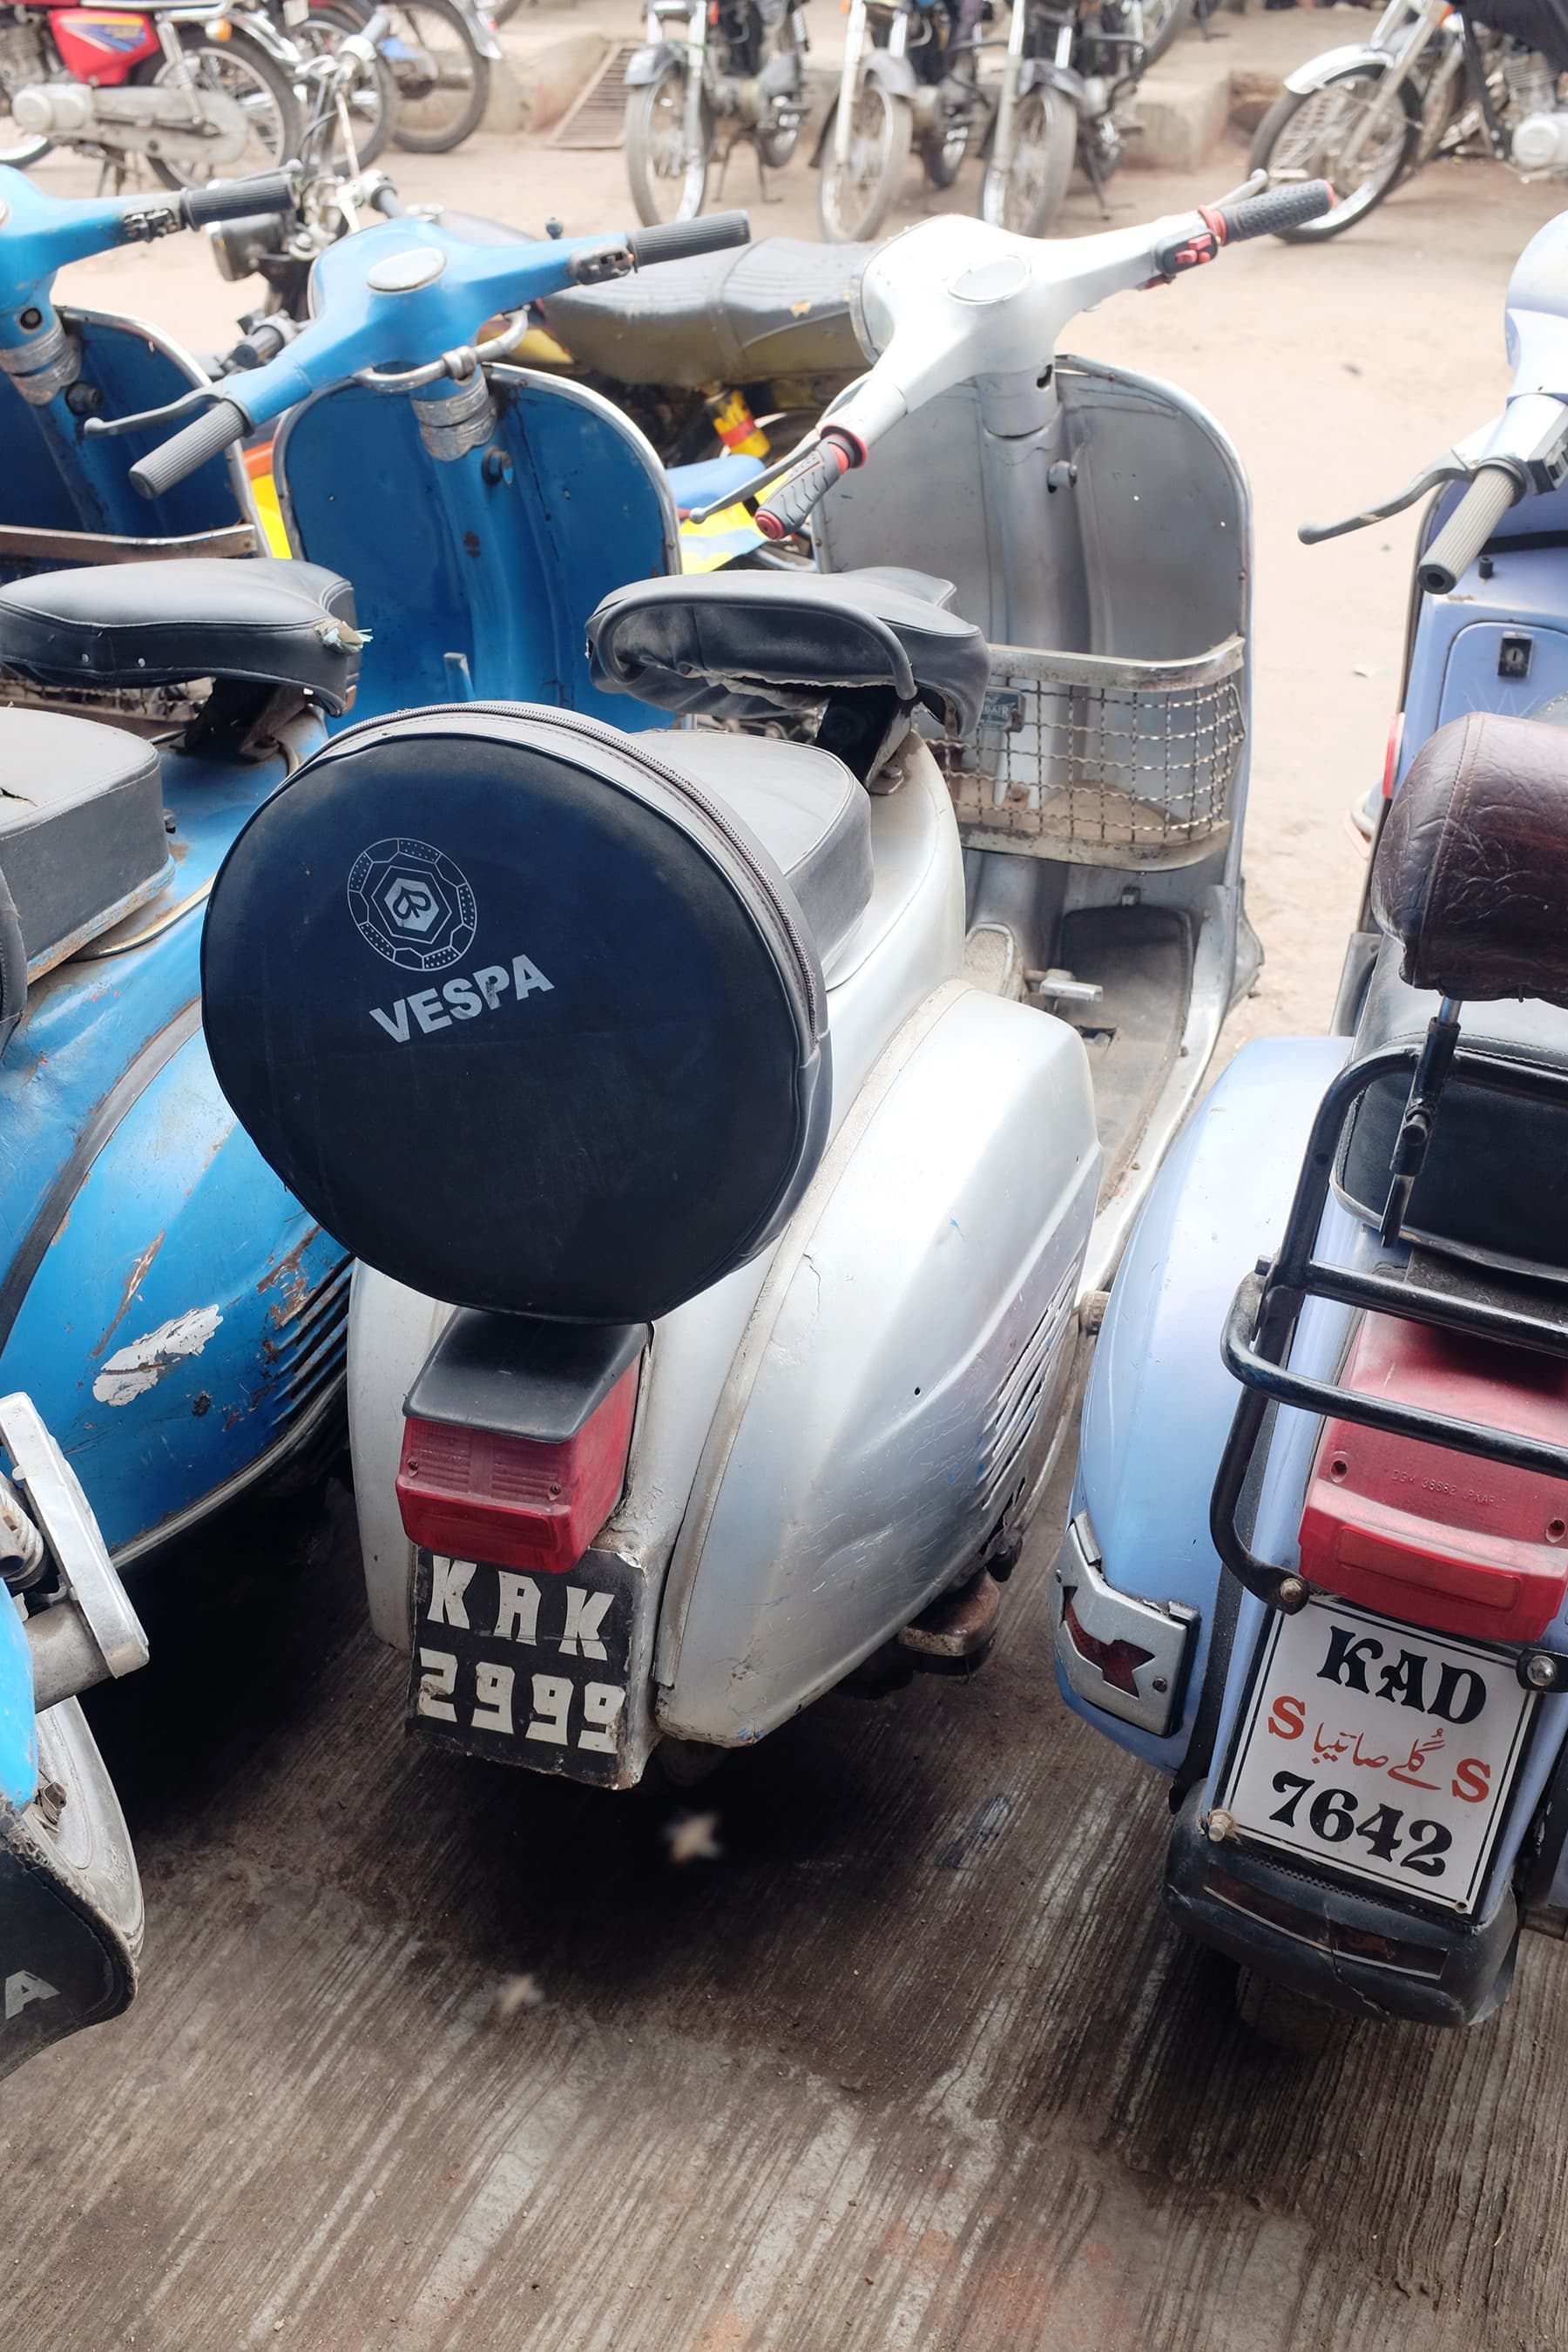 A Vespa repainted in silver.